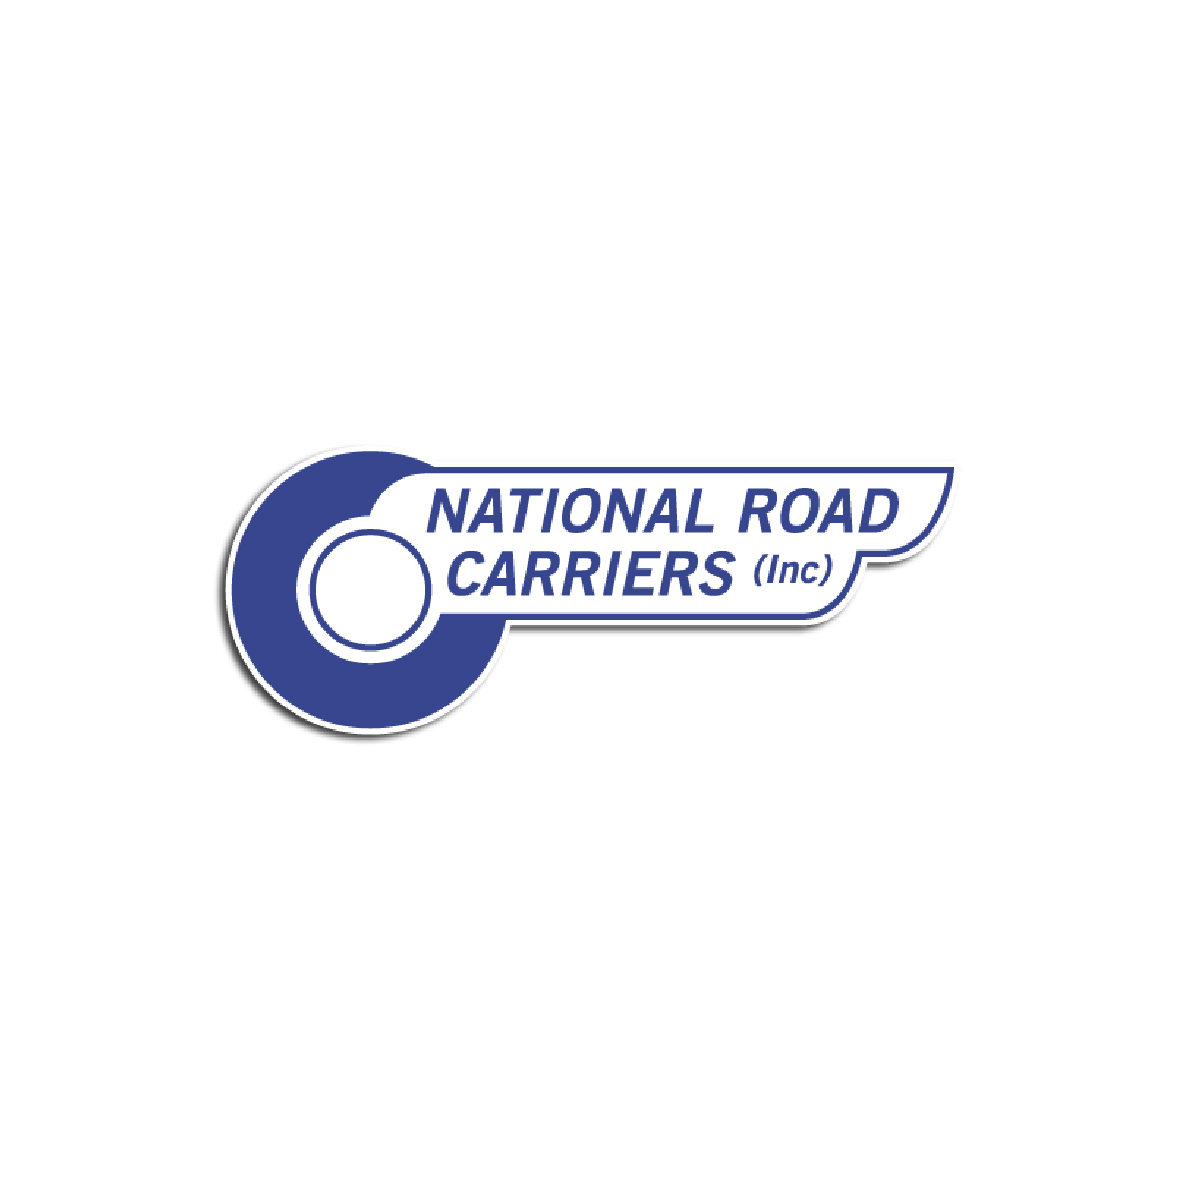 national road carriers-01.jpg